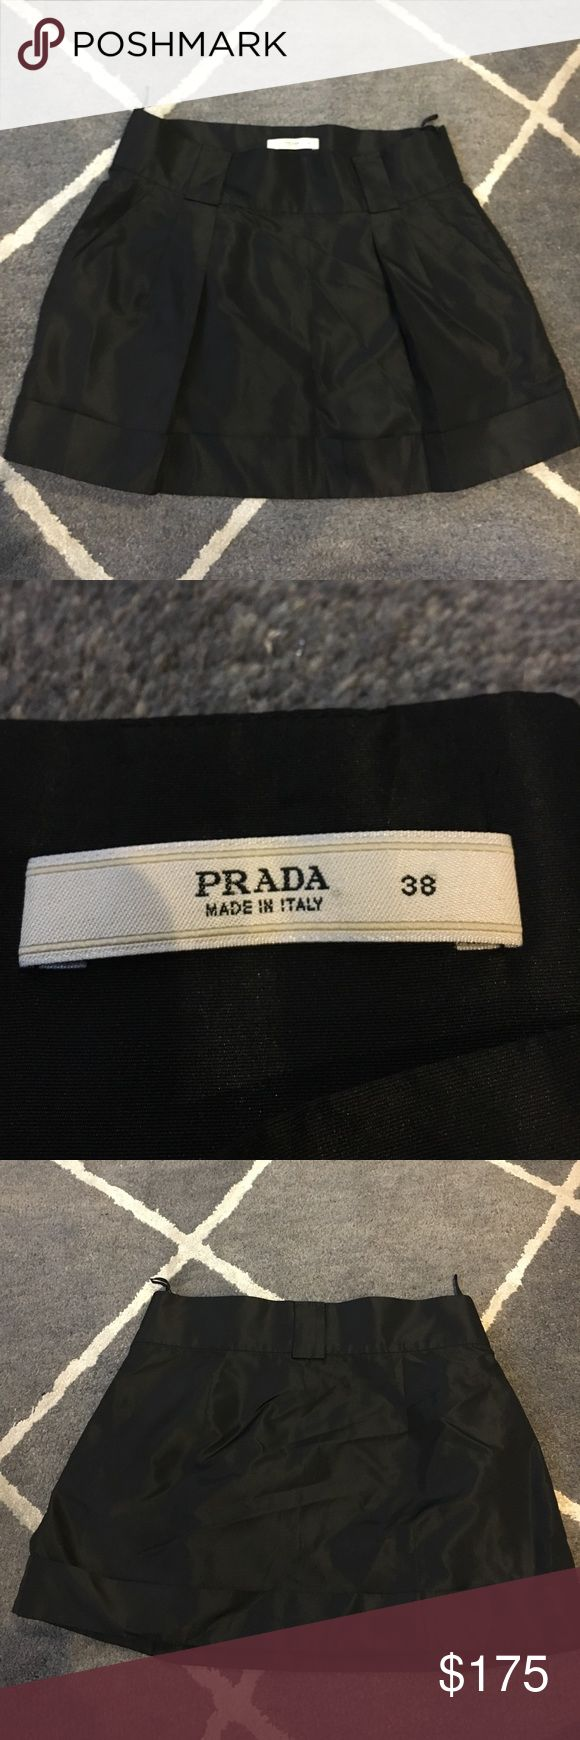 Prada Nylon Mini Skirt w. Pockets Cute and sexy at the same time! This pocketed Prada skirt is perfect for date night. Pristine condition!! I got it as a birthday gift and have yet to wear it. Fits like a 2-4 US. Prada Skirts Mini